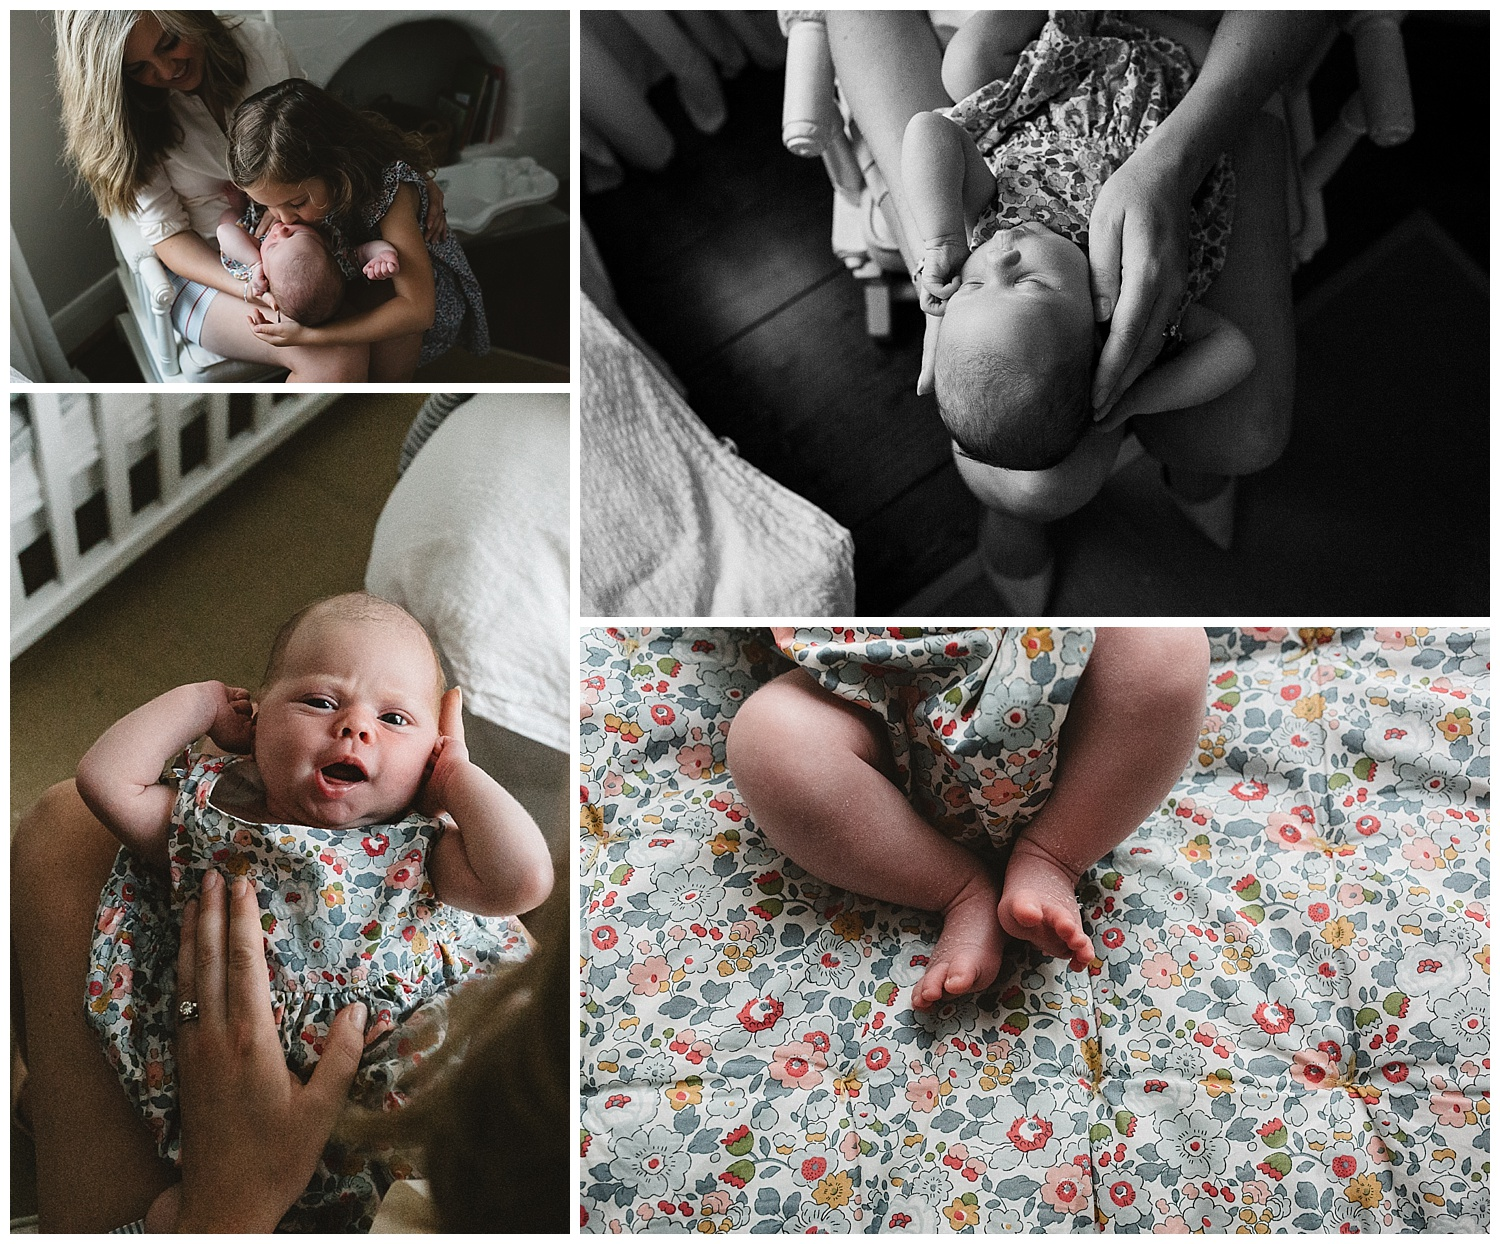 Parkdale photography at home. Baby photography in melbourne